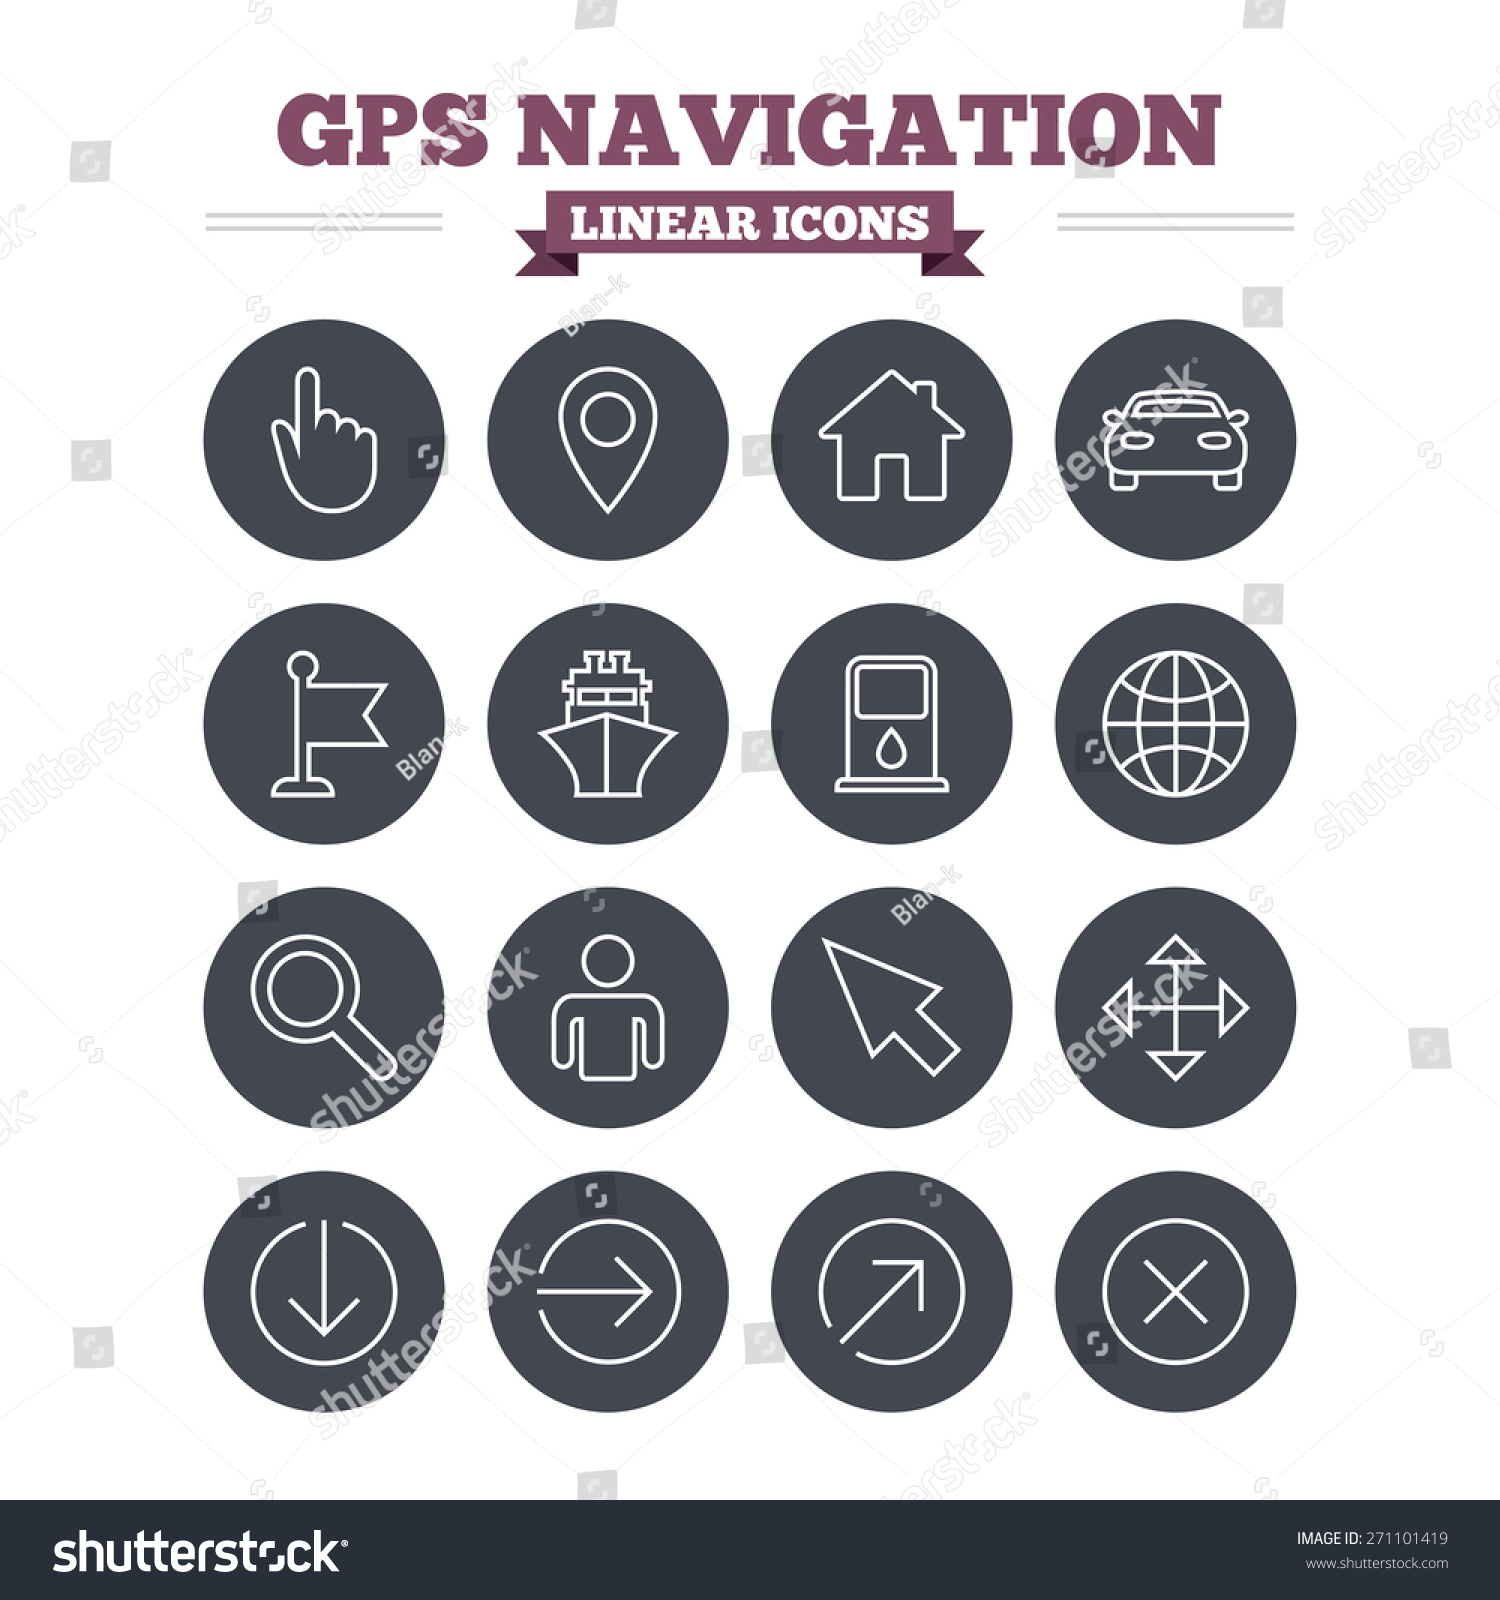 Gps Navigation Linear Icons Set Car Stock Vector 271101419. Csar Signs Of Stroke. Free Advertising Banners. Breen Signs. Heat Illness Signs Of Stroke. Alchemy Signs Of Stroke. Airsoft Gun Decals. Cowboy Bebop Decals. Guitar Fretboard Stickers